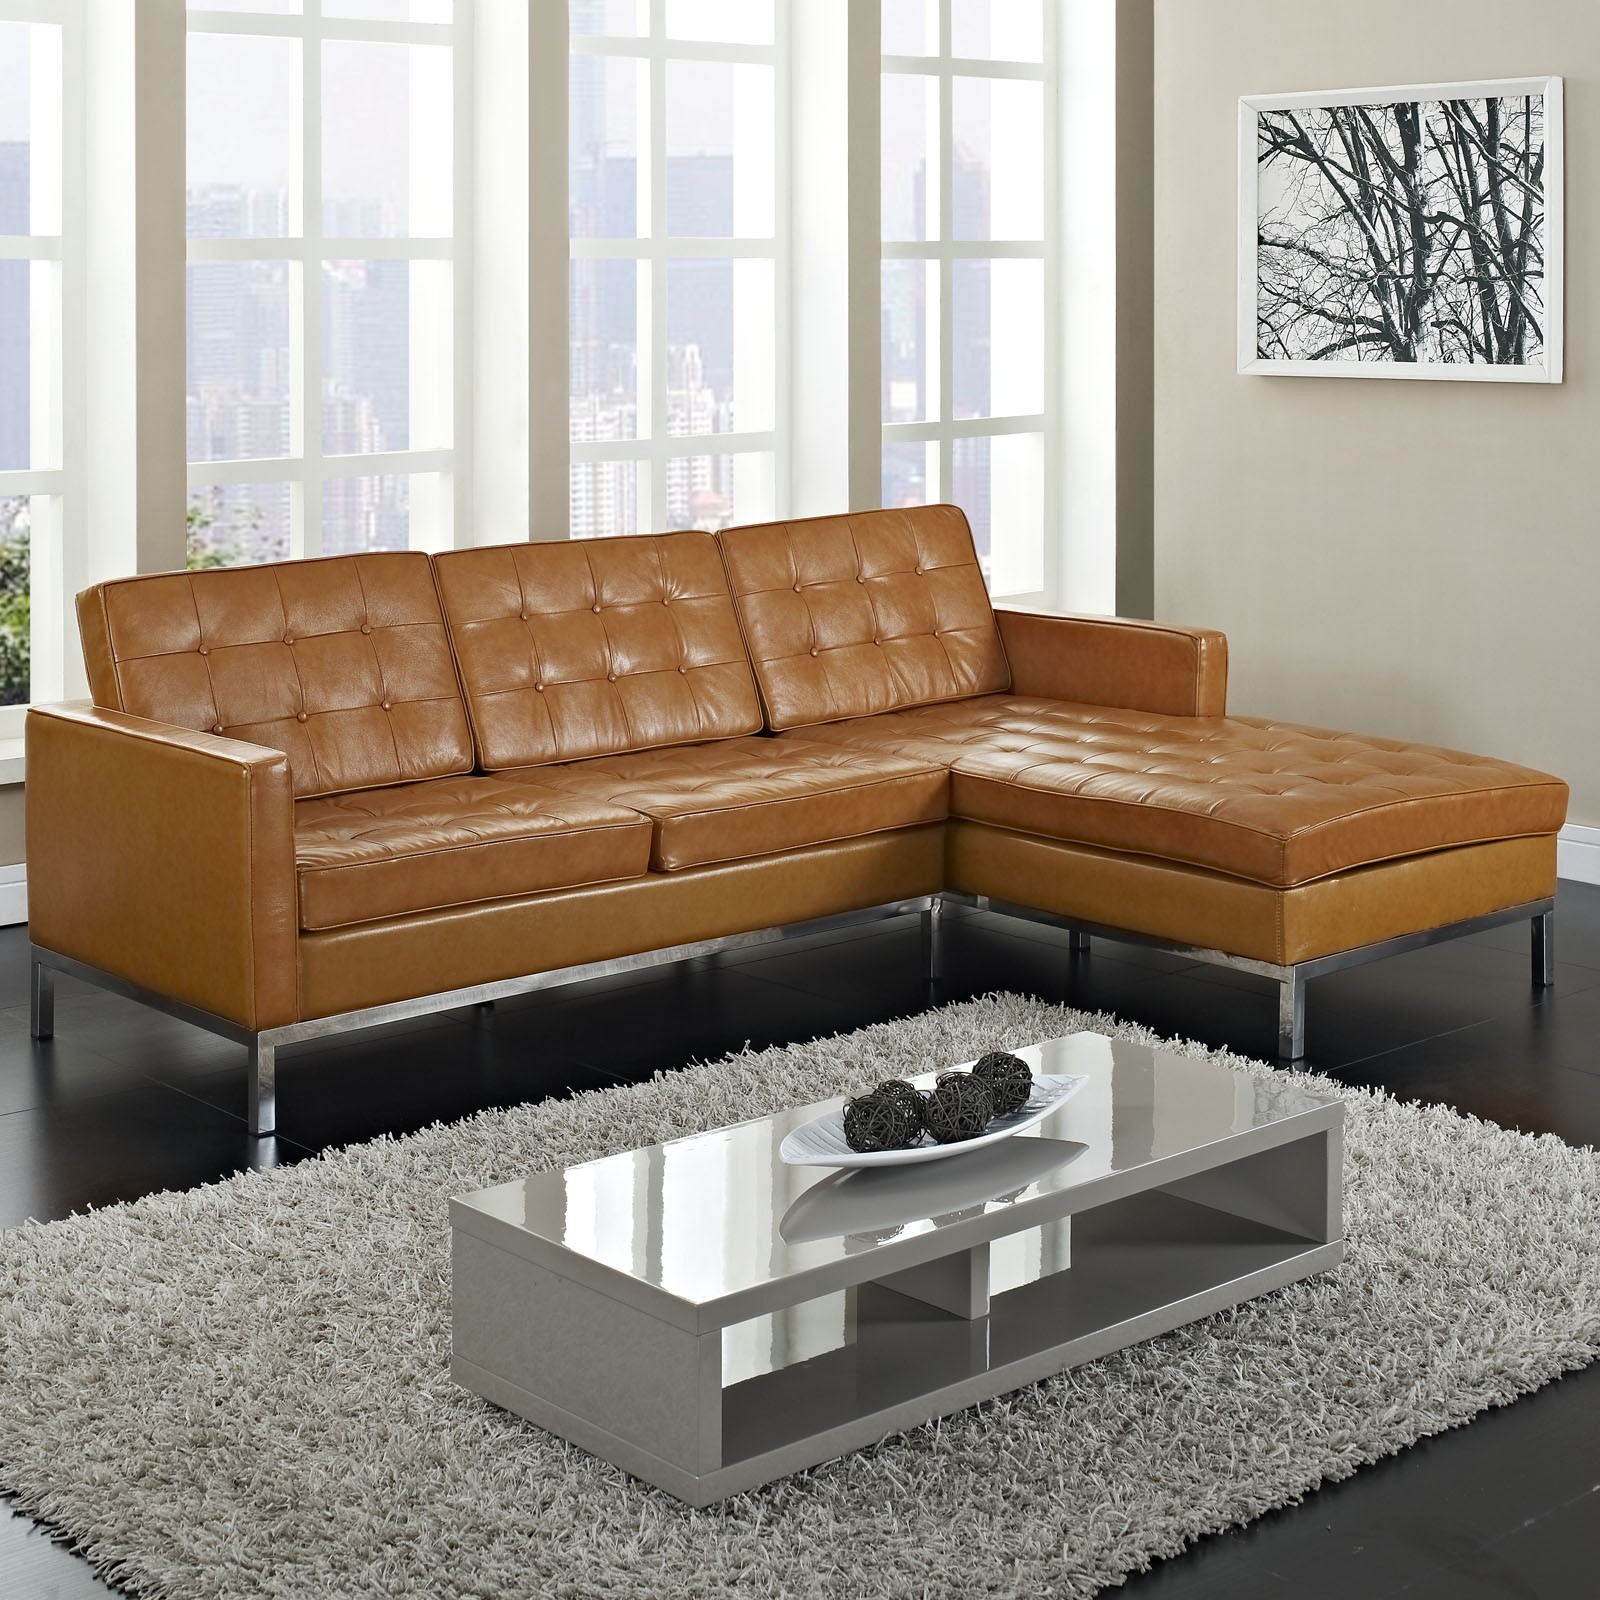 Excellent Find Small Sectional Sofas For Small Spaces 52 In Condo Pertaining To Condo Sectional Sofas (#9 of 12)